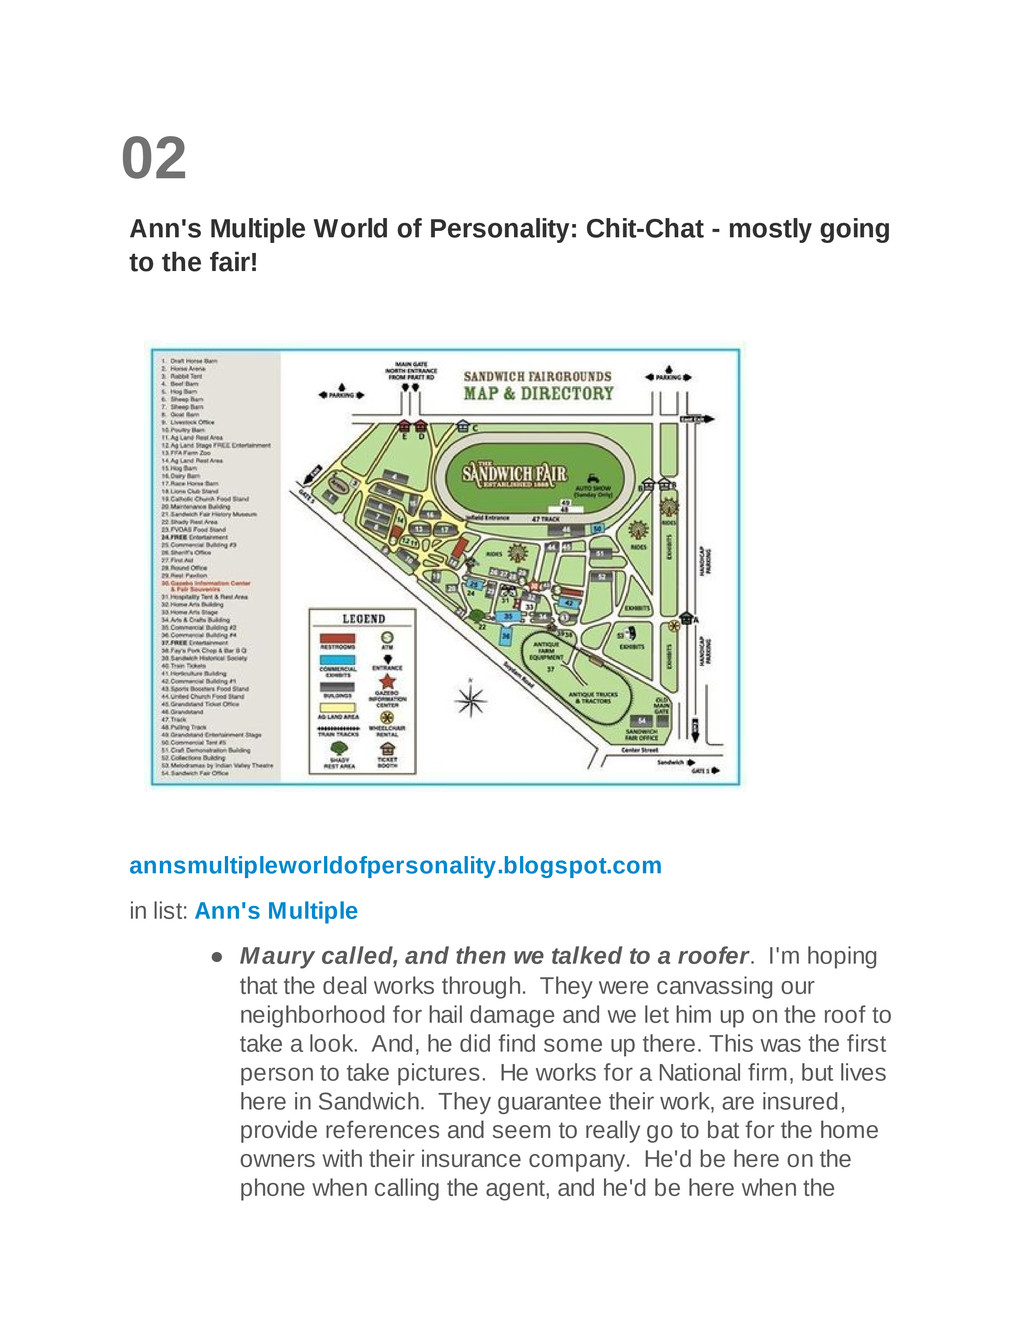 02 Ann's Multiple World of Personality: Chit-Ch...